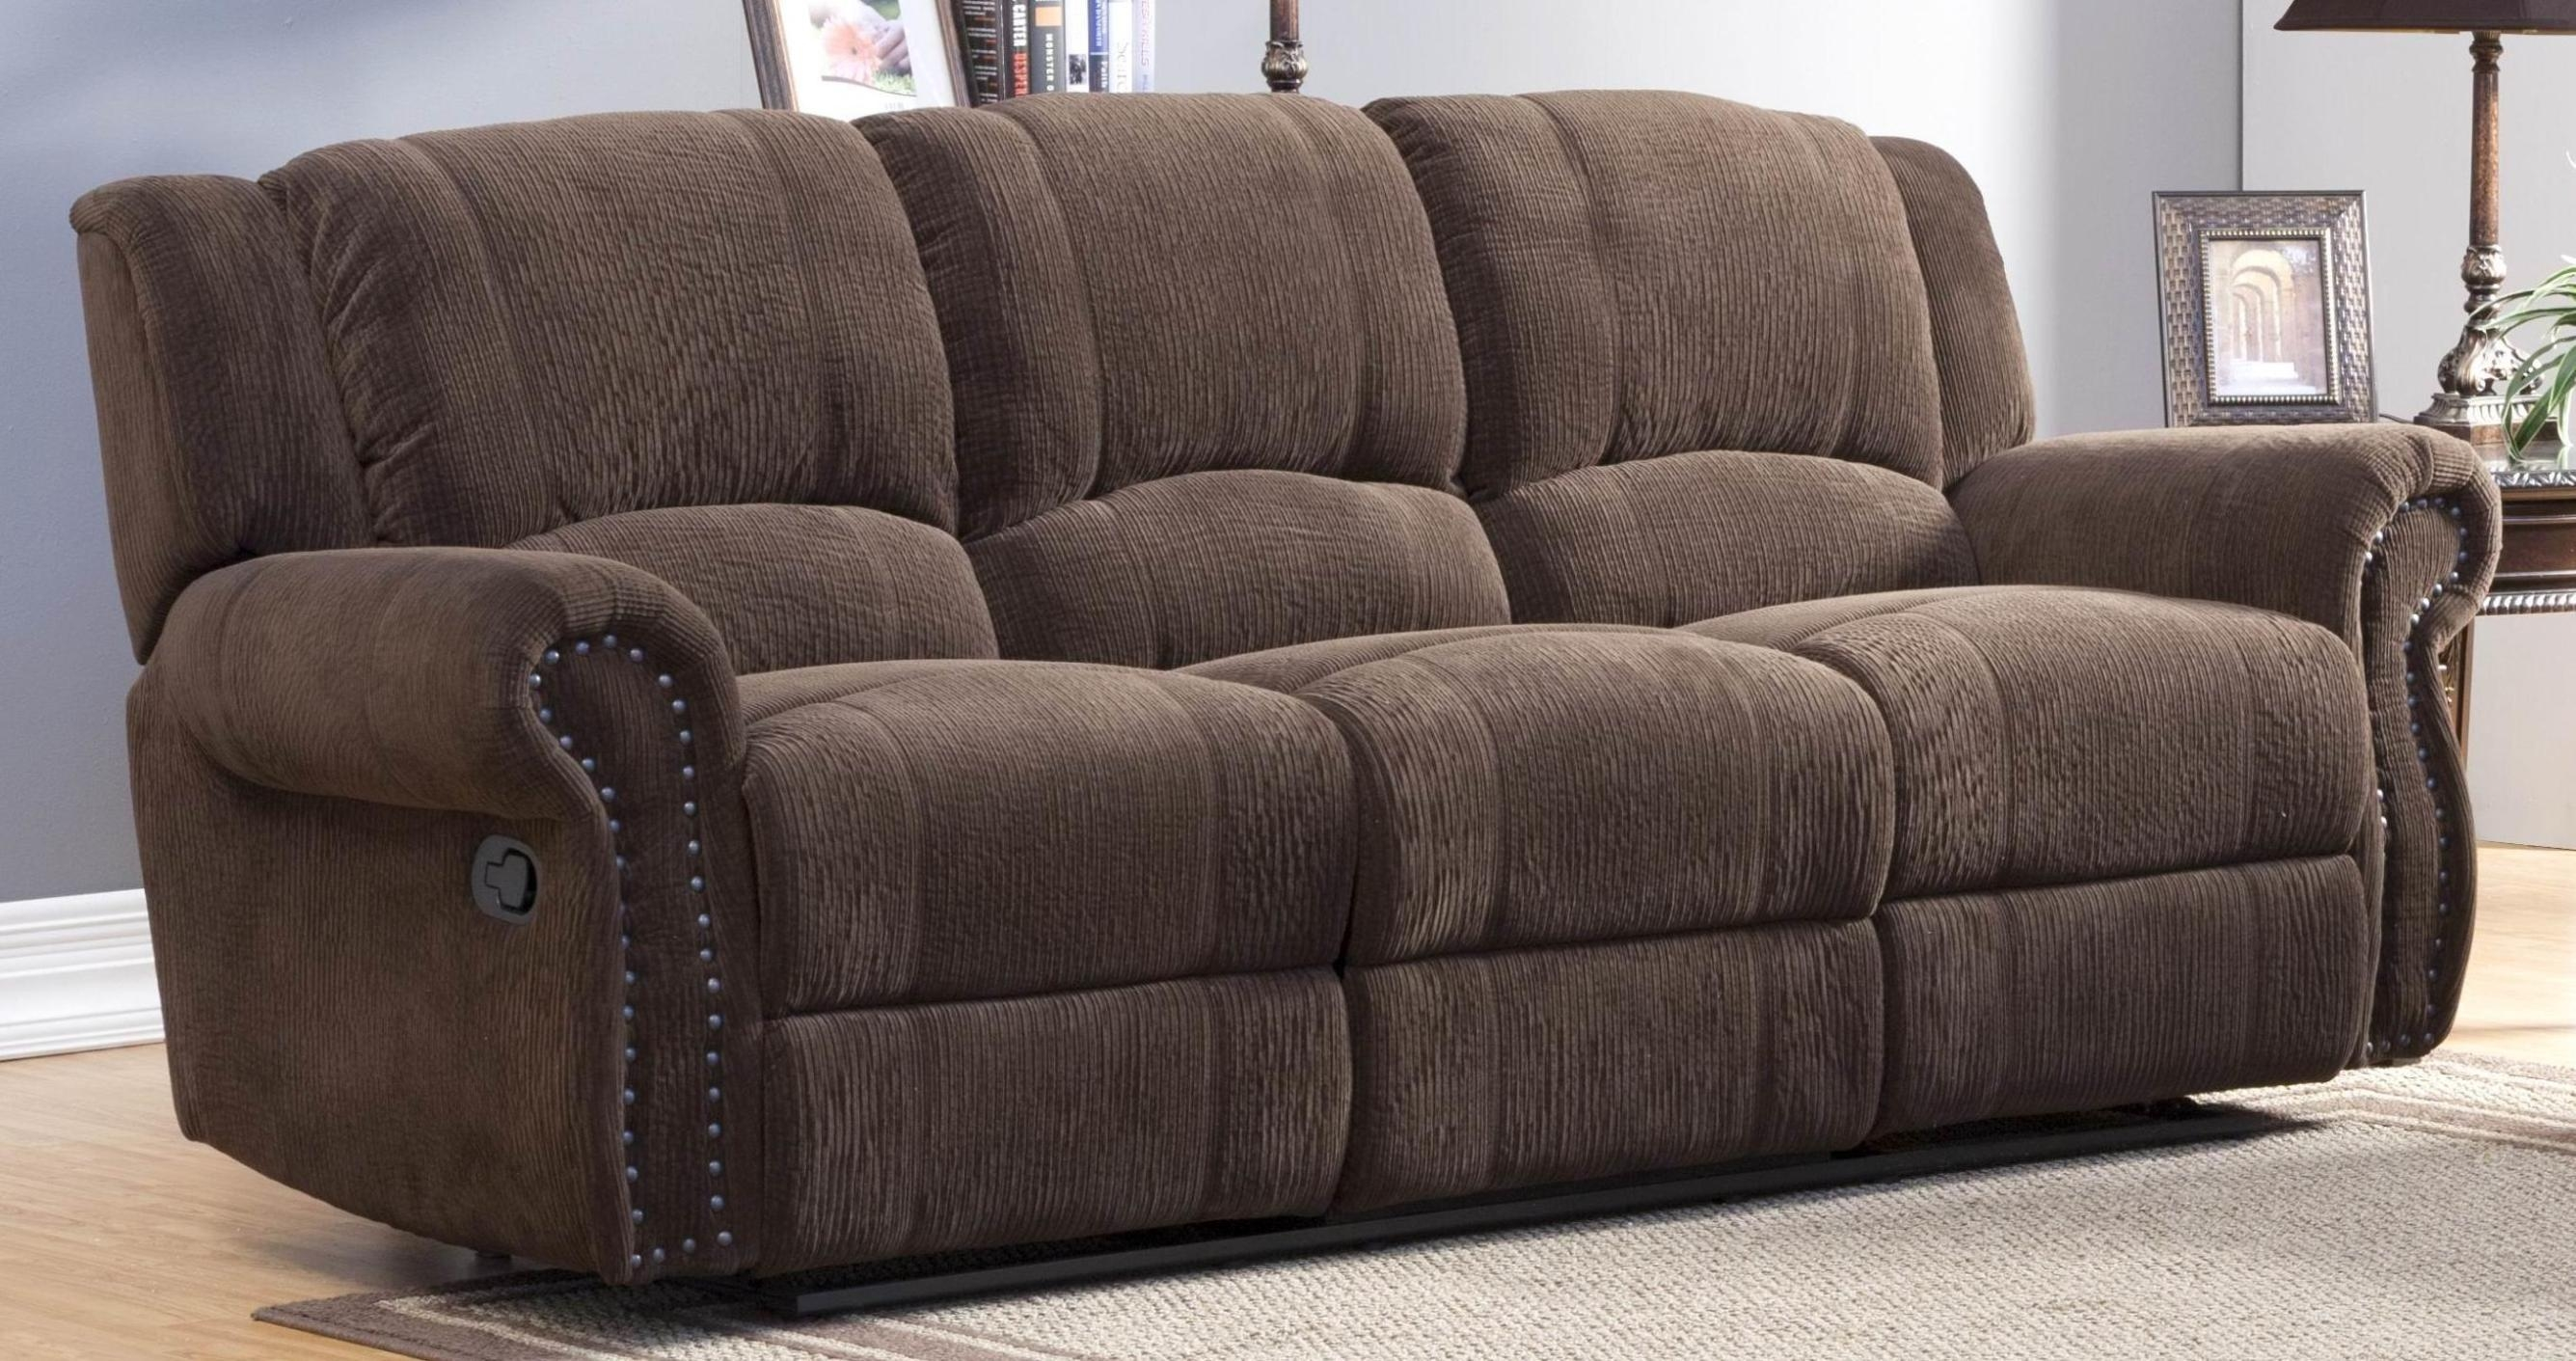 Best Slipcovers For Reclining Sectional Sofas Intended For Slipcovers For Sectional Sofas With Recliners (View 3 of 20)